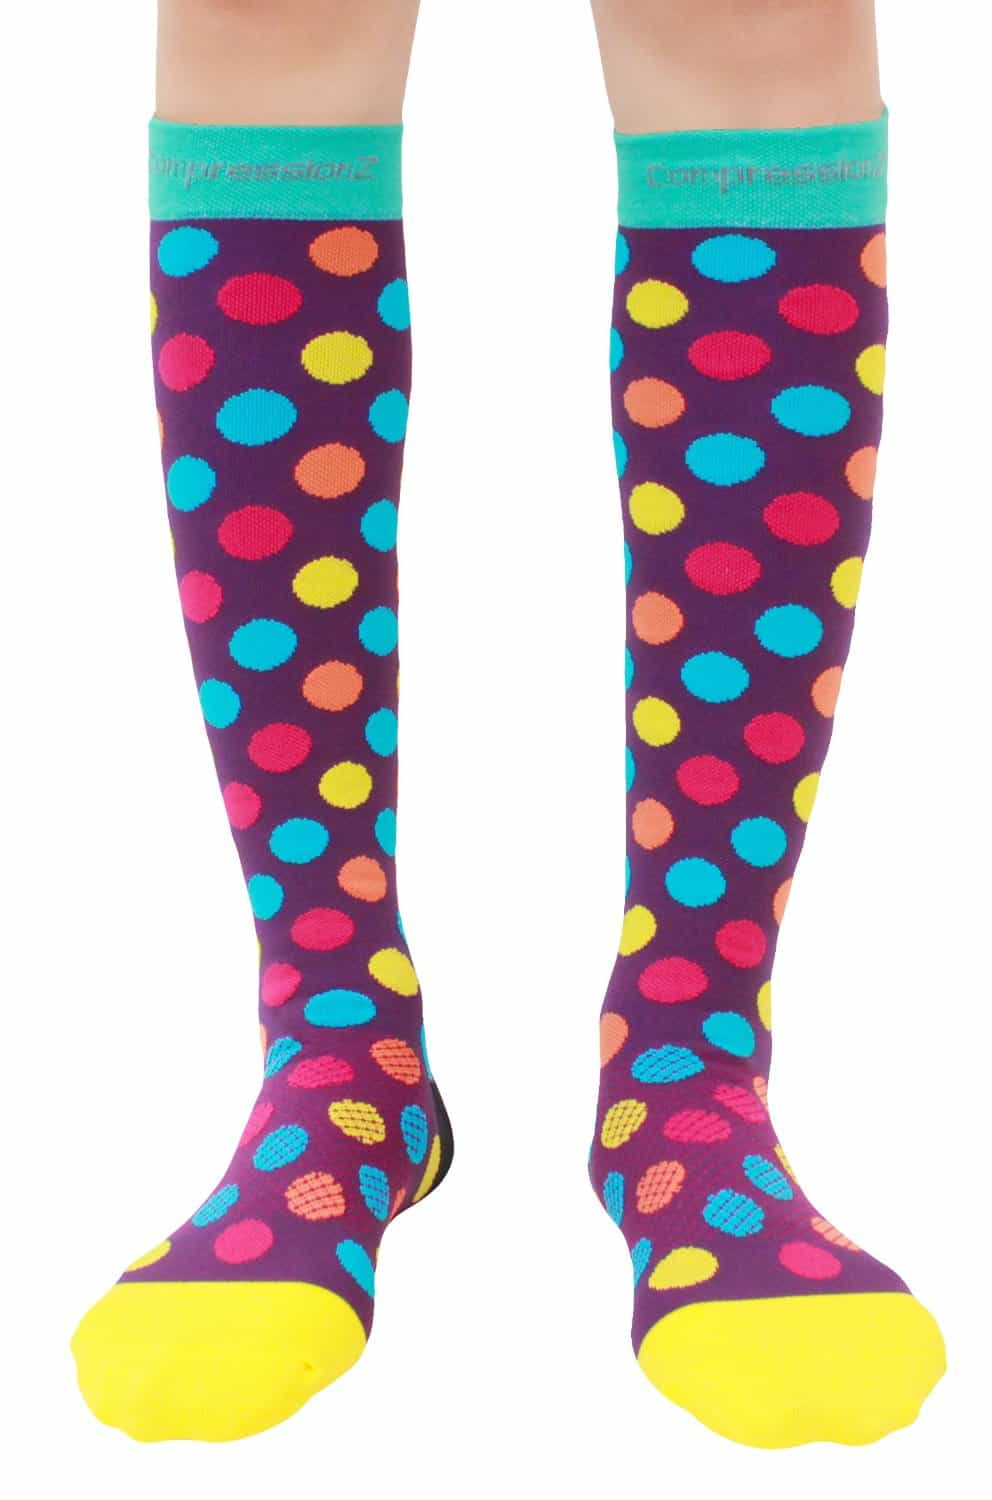 Best Compression Socks for Nurses - Sport Therapy Support